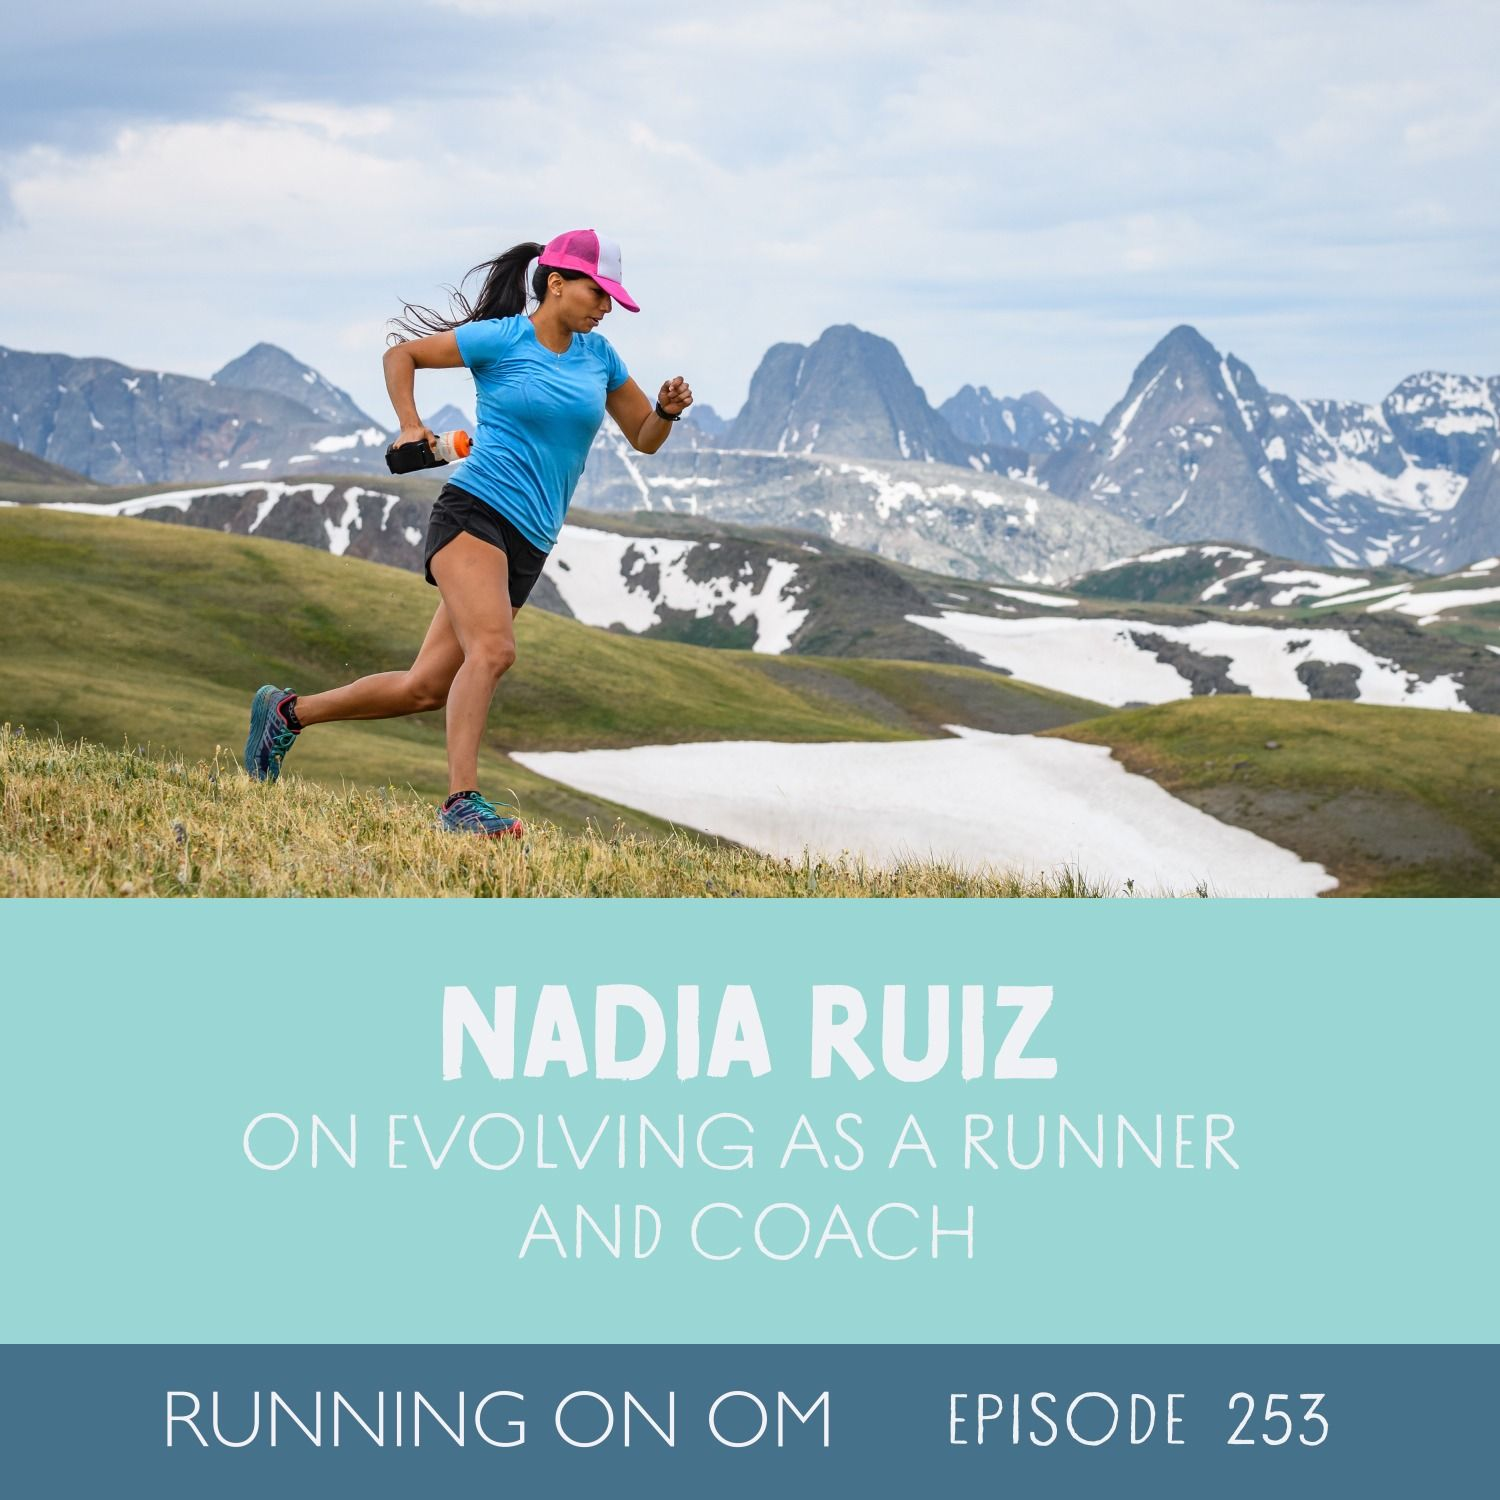 Nadia Ruiz on Evolving as a Runner and Coach